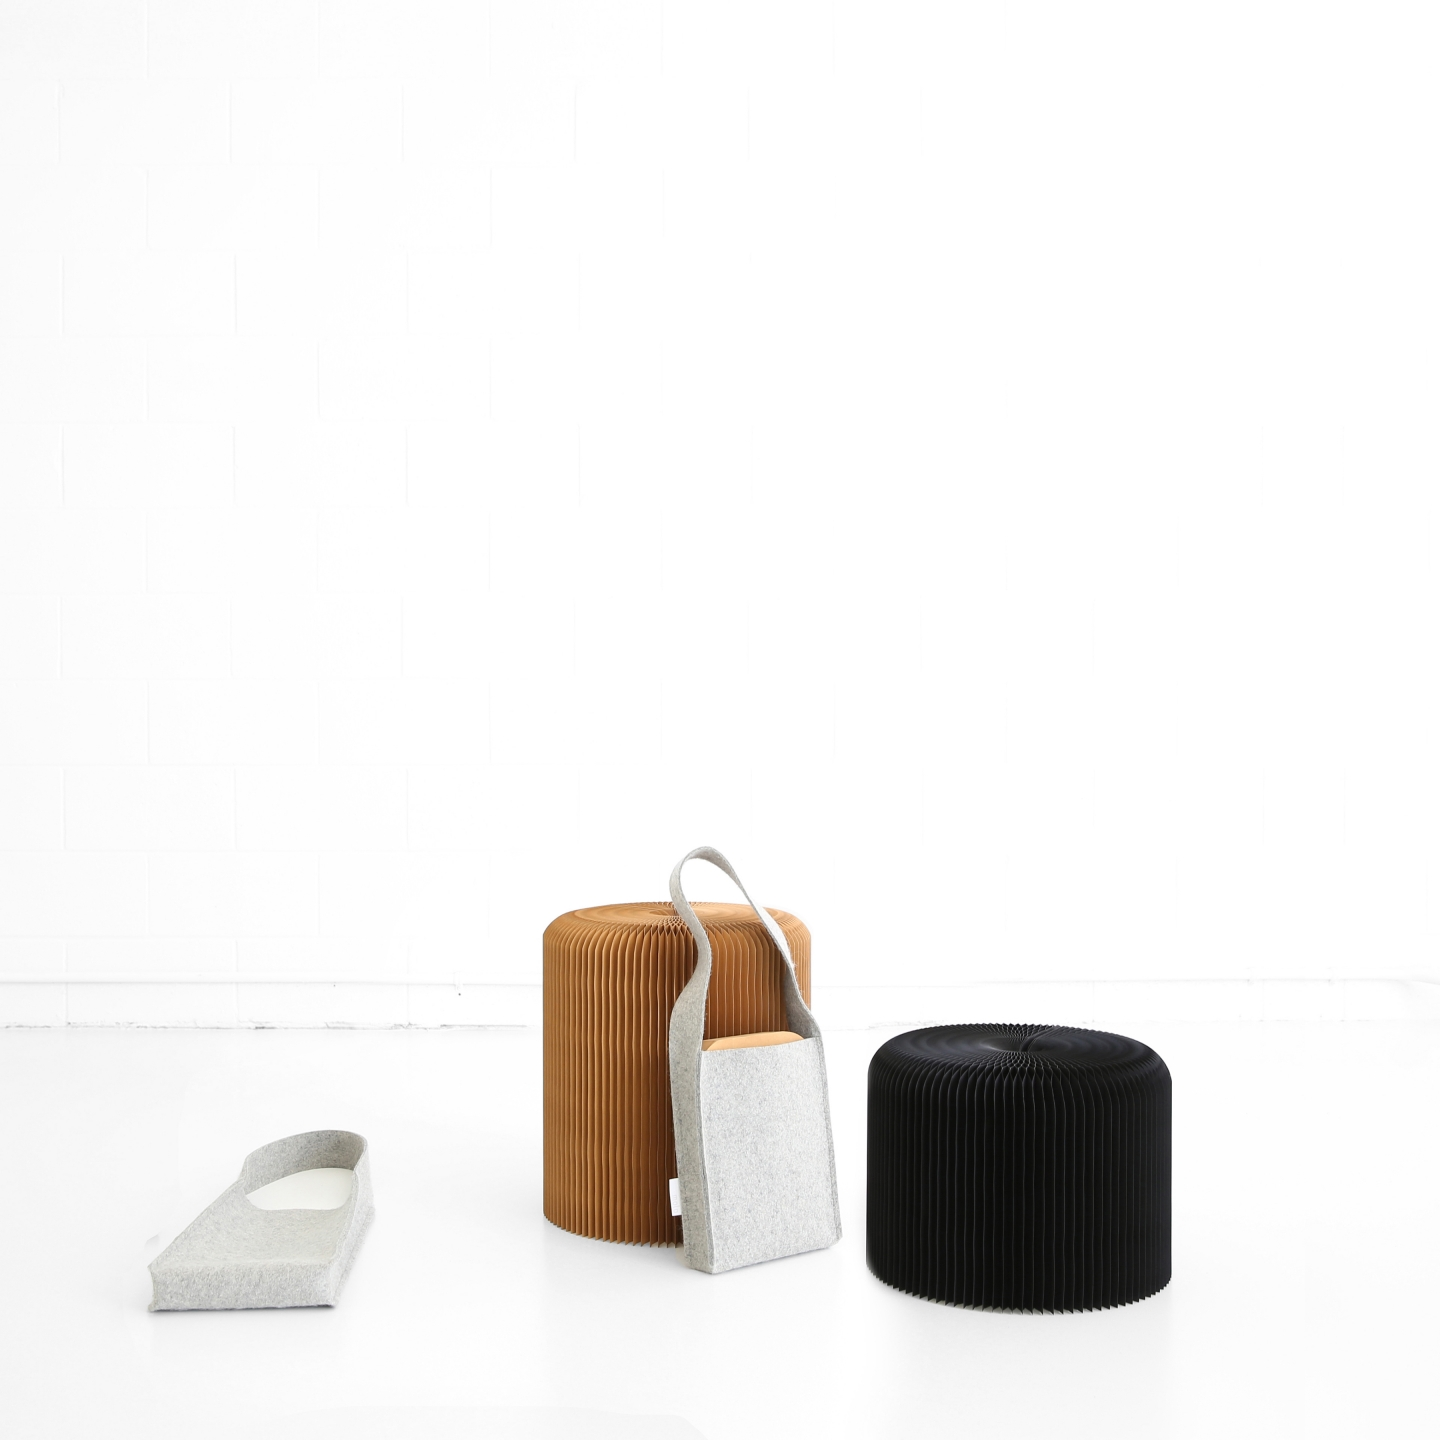 two examples of molo's softseating fanning stool with felt tote